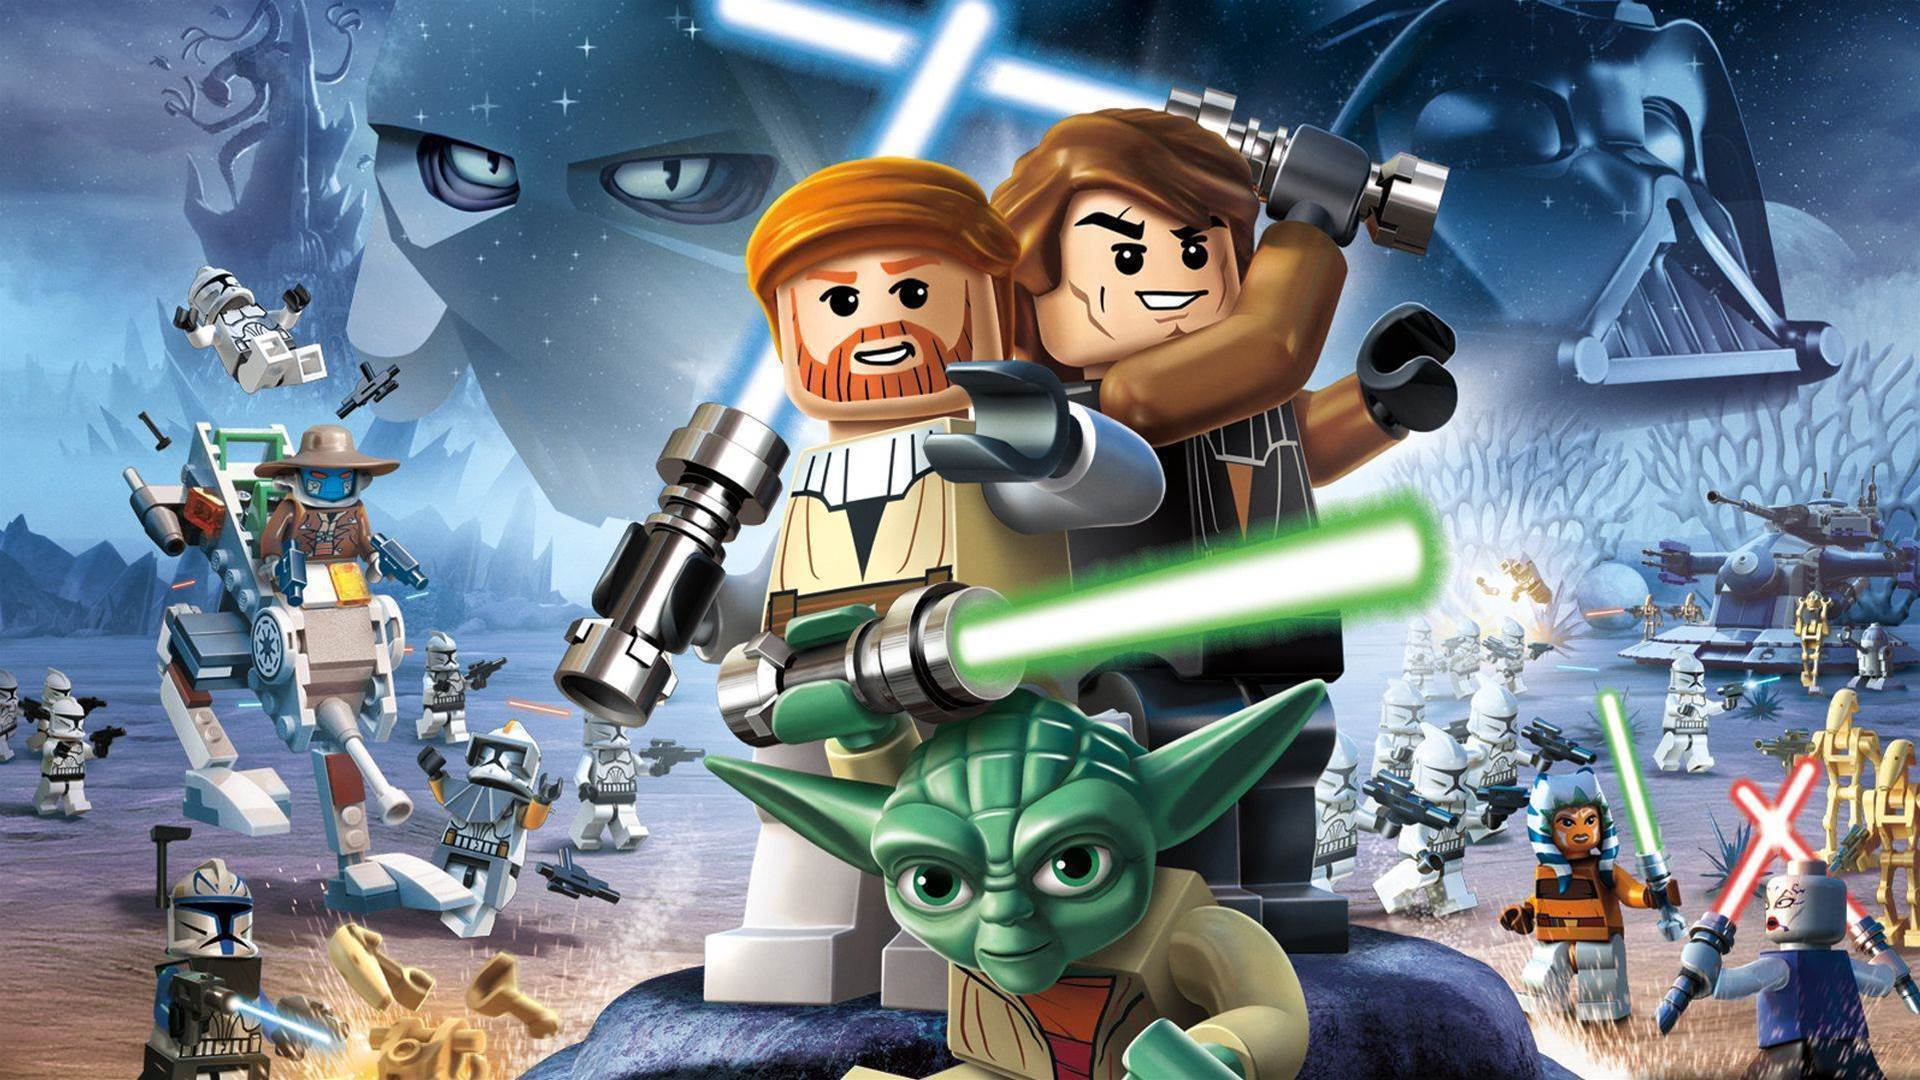 Games With Gold September releases include Prison Architect, Lego Star Wars 3